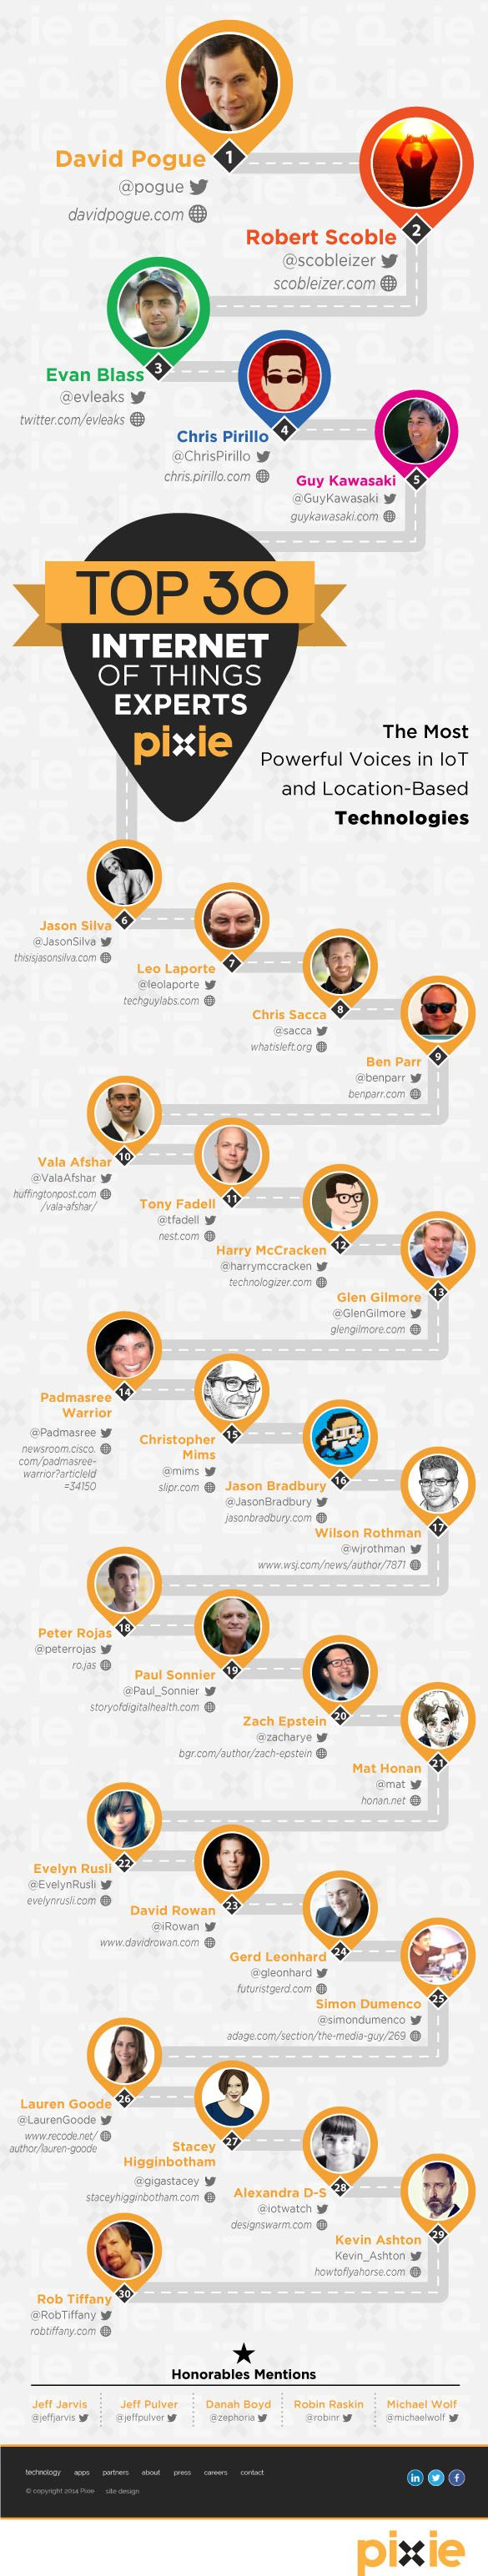 The Top 30 Internet of Things Experts | Inc.com